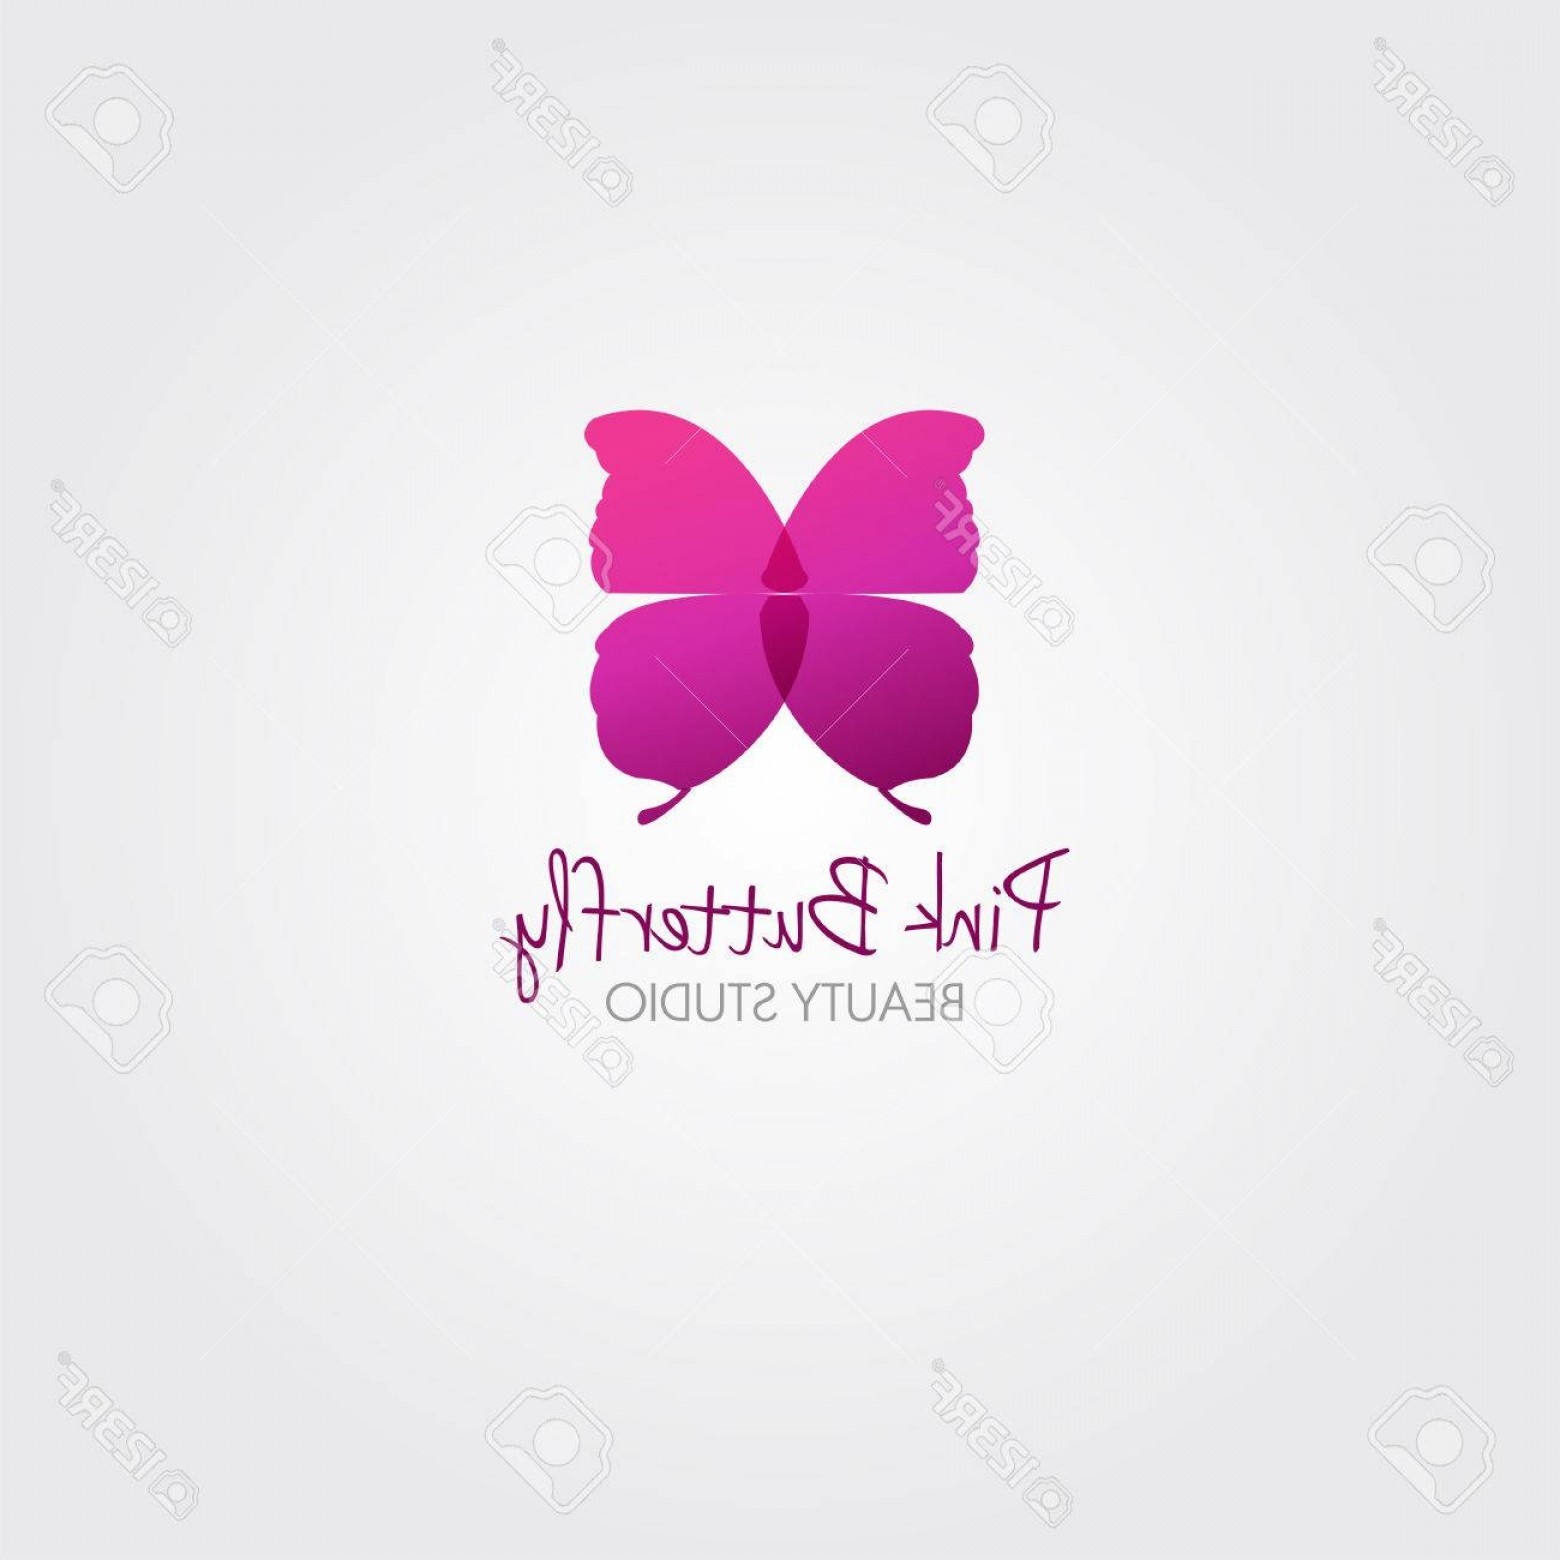 Butterfly Vector Logo: Photostock Vector Butterfly Vector Design Concept For Beauty Salon Or Studio Vector Logo Template